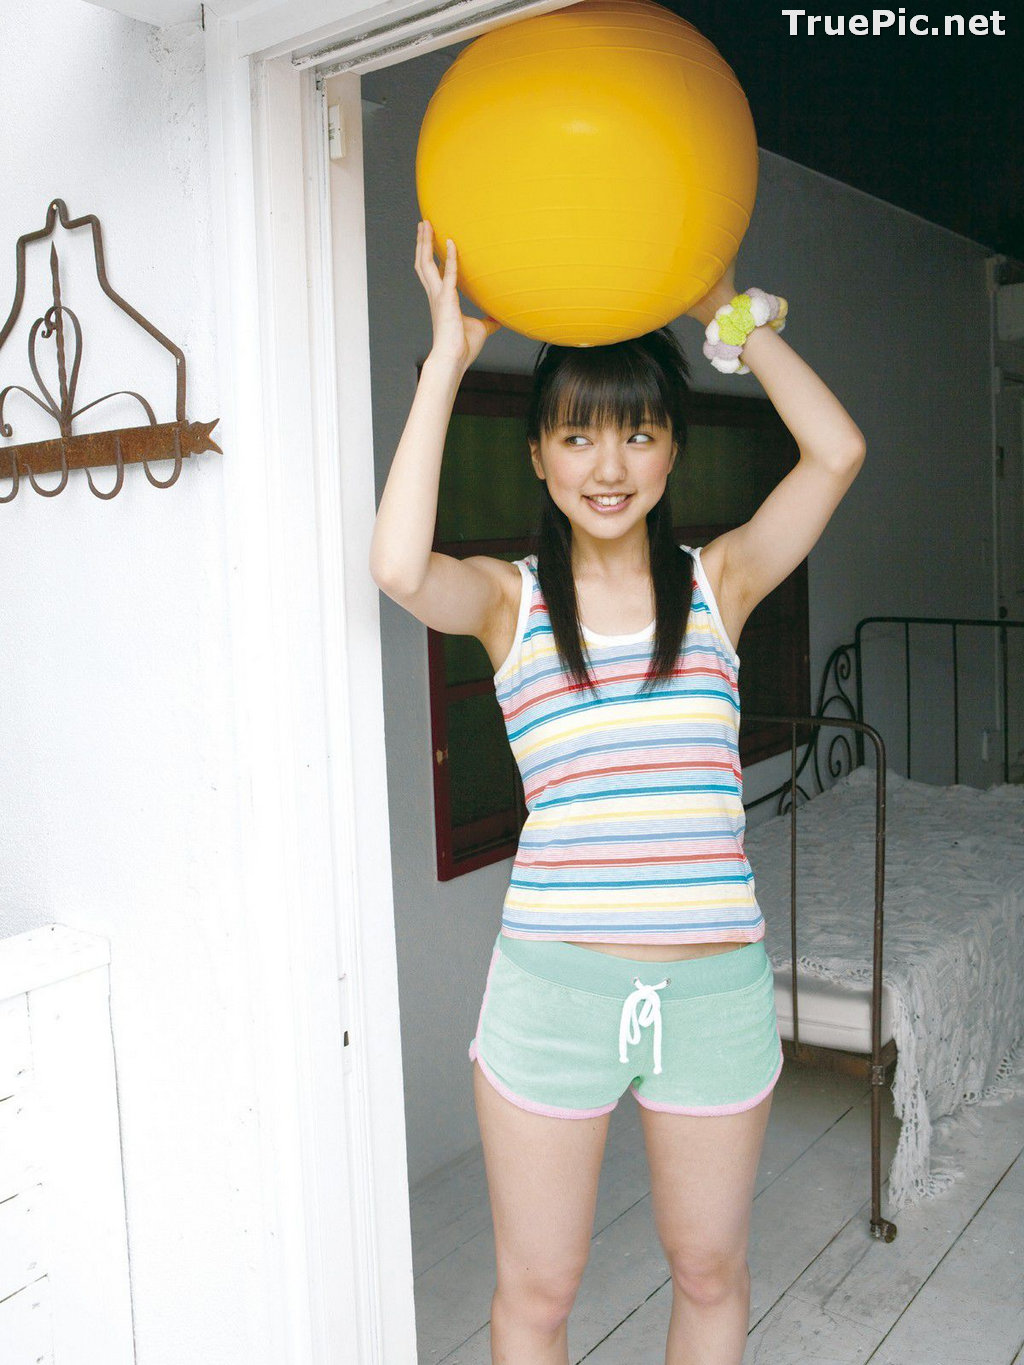 Image Japanese Singer and Actress - Erina Mano - Summer Greeting Photo Set - TruePic.net - Picture-5